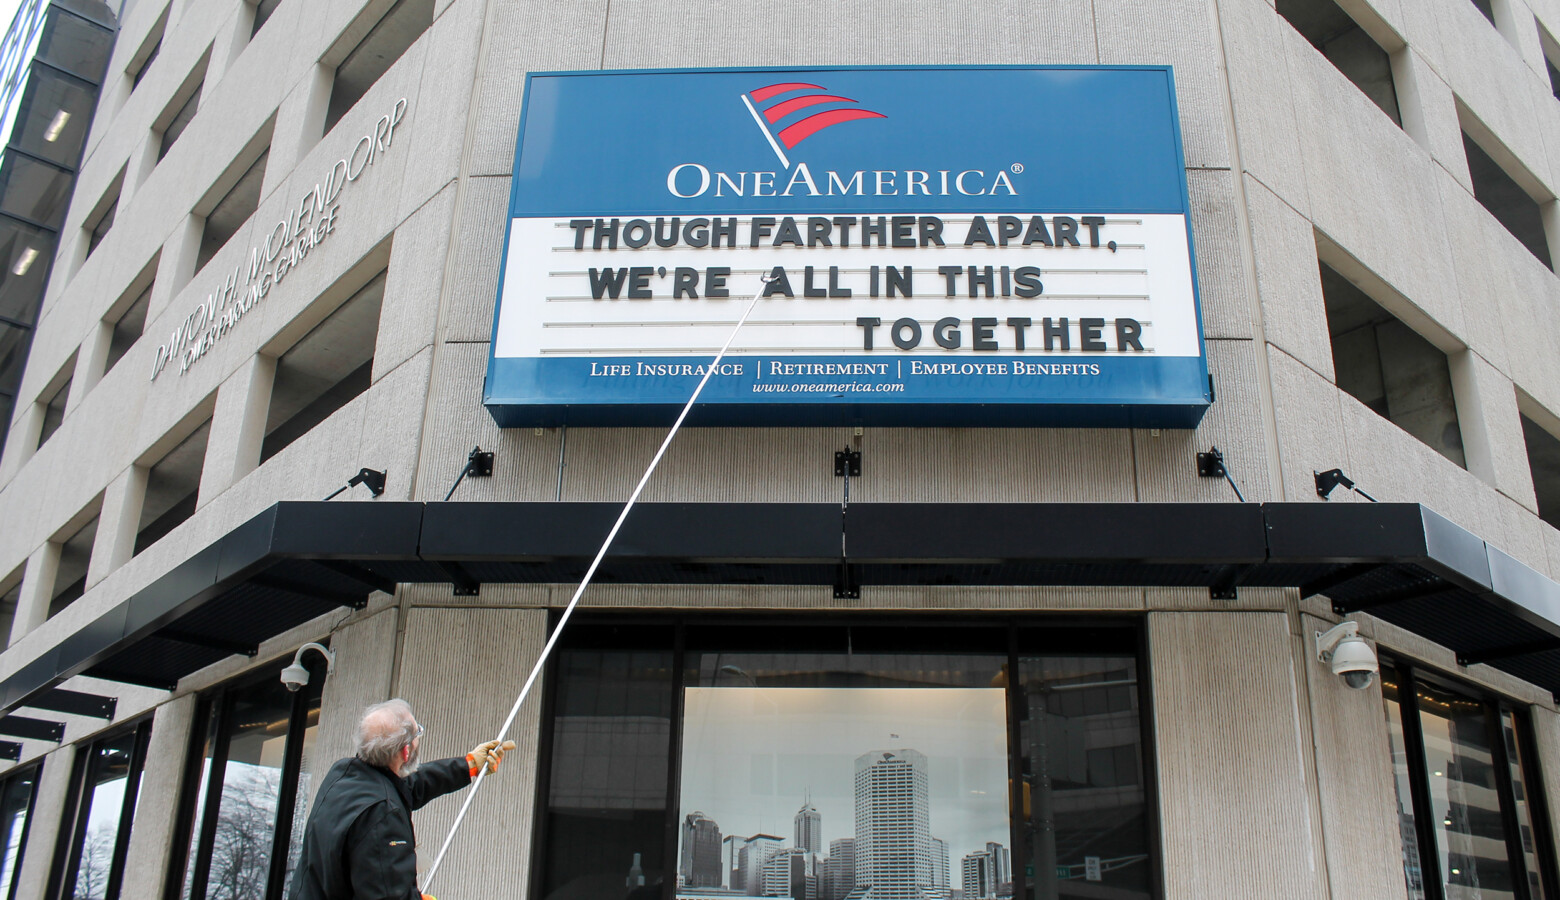 "A man adjusts the One America sign in downtown Indianapolis. It usually displays a pun, but the message shortly before the governor's address reads: ""Although father apart, we're all in this together."" (Lauren Chapman/IPB News)"